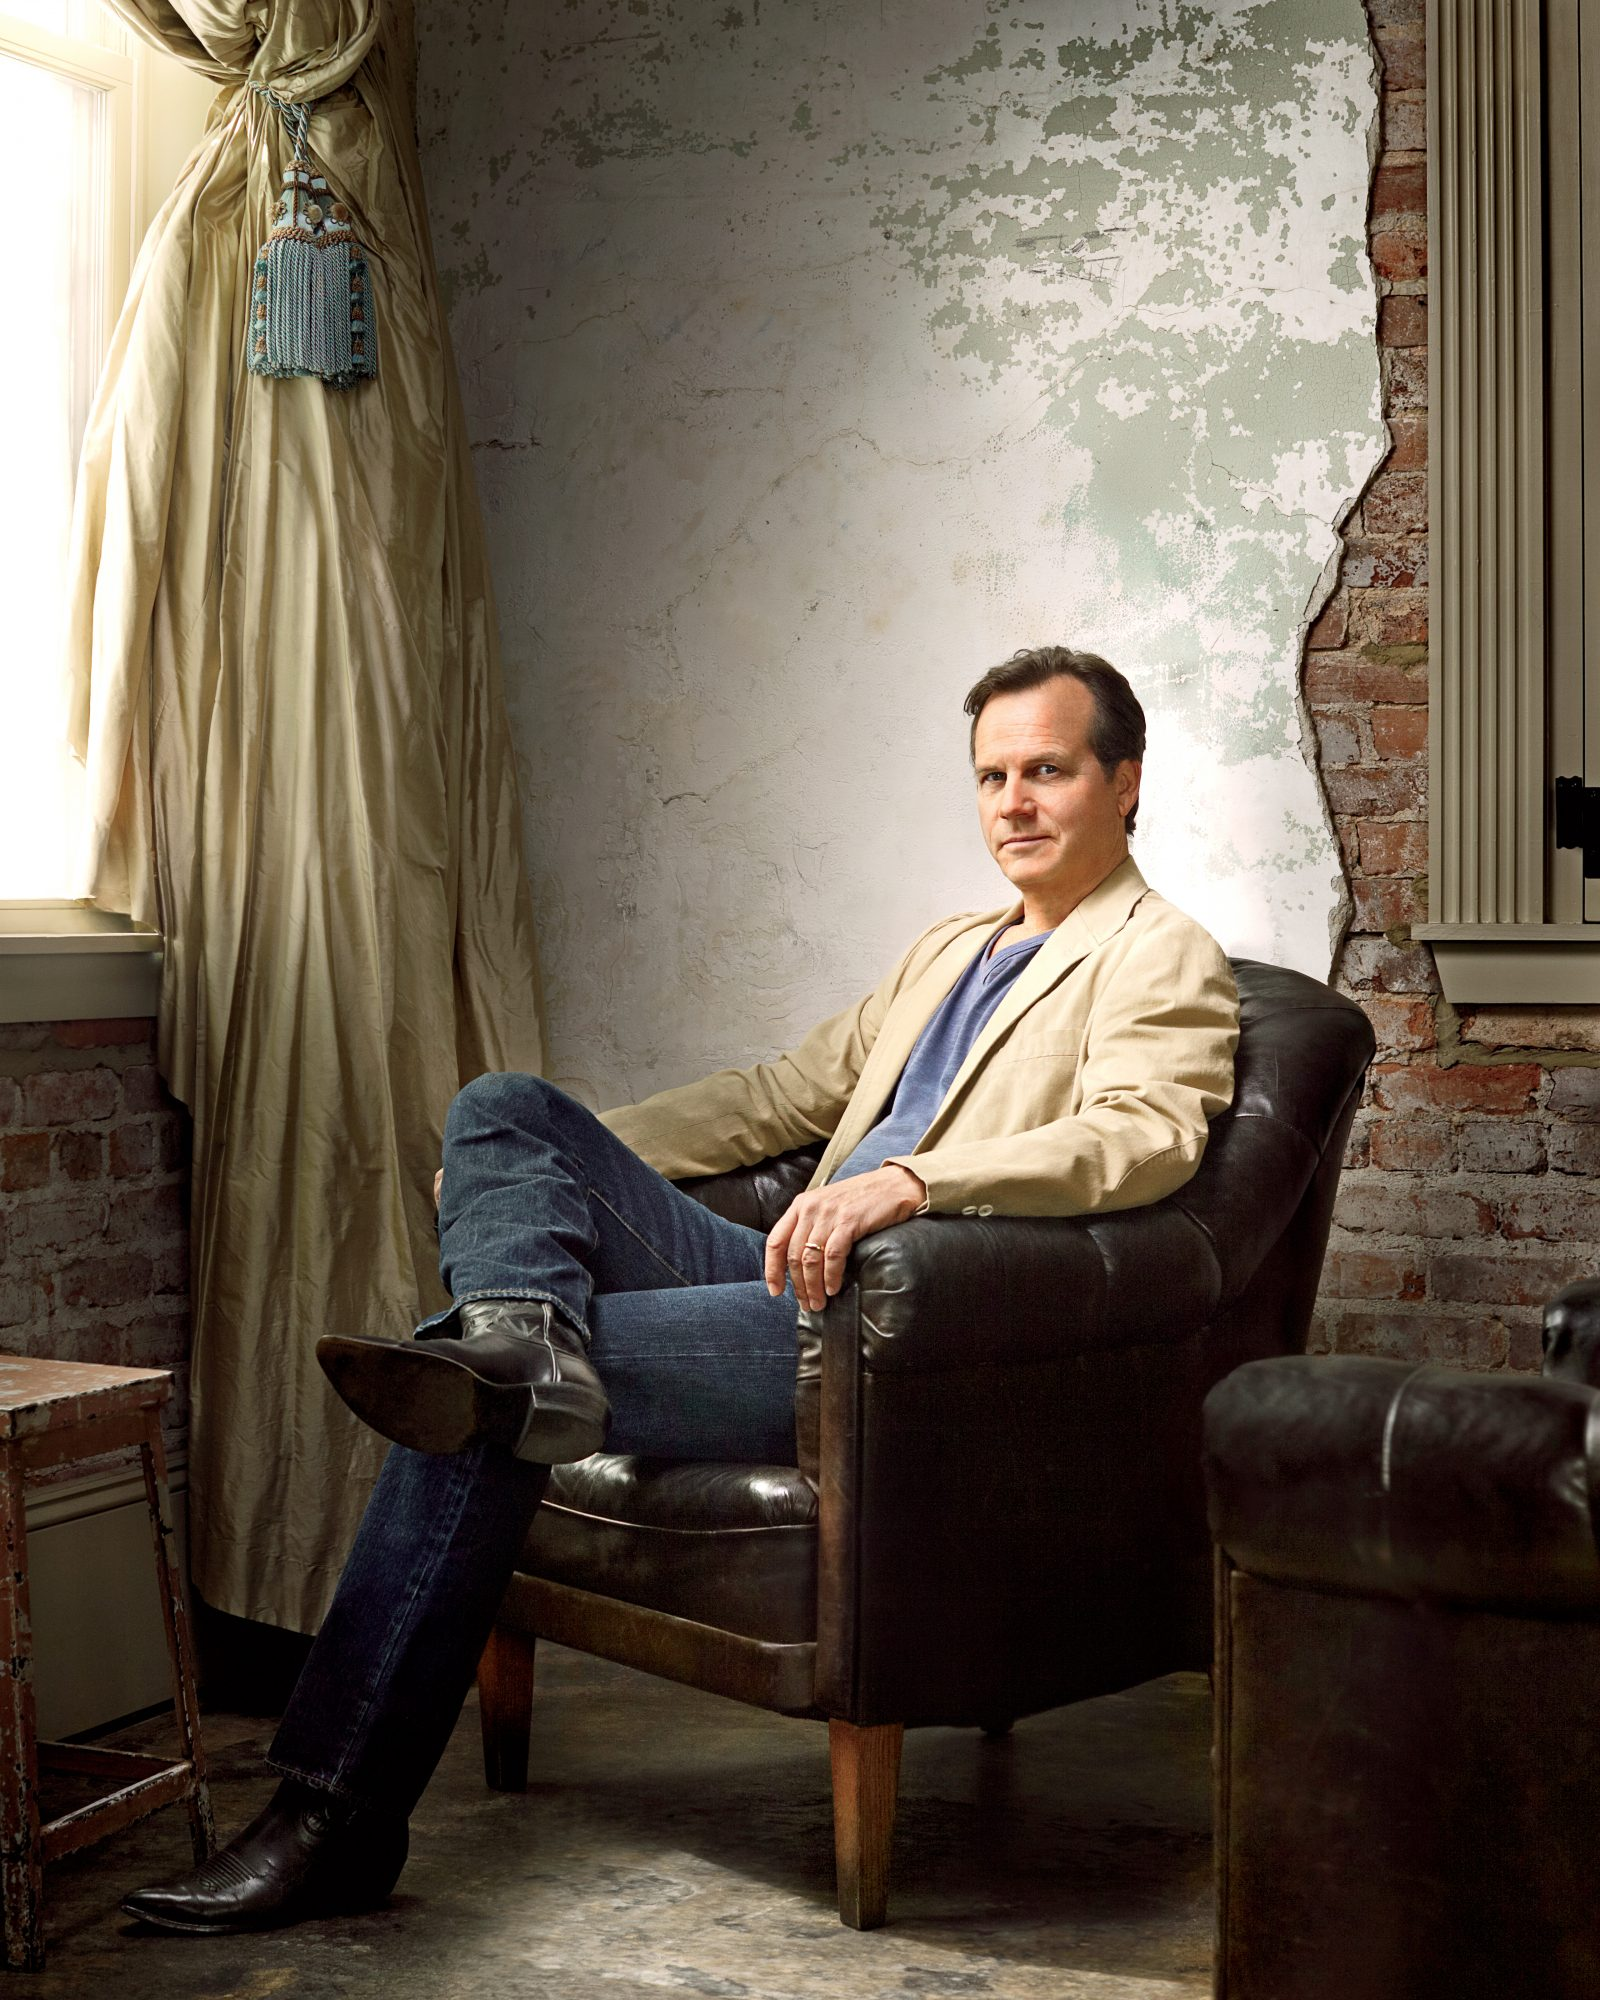 Paper Napkin Interview: Dishing with Bill Paxton